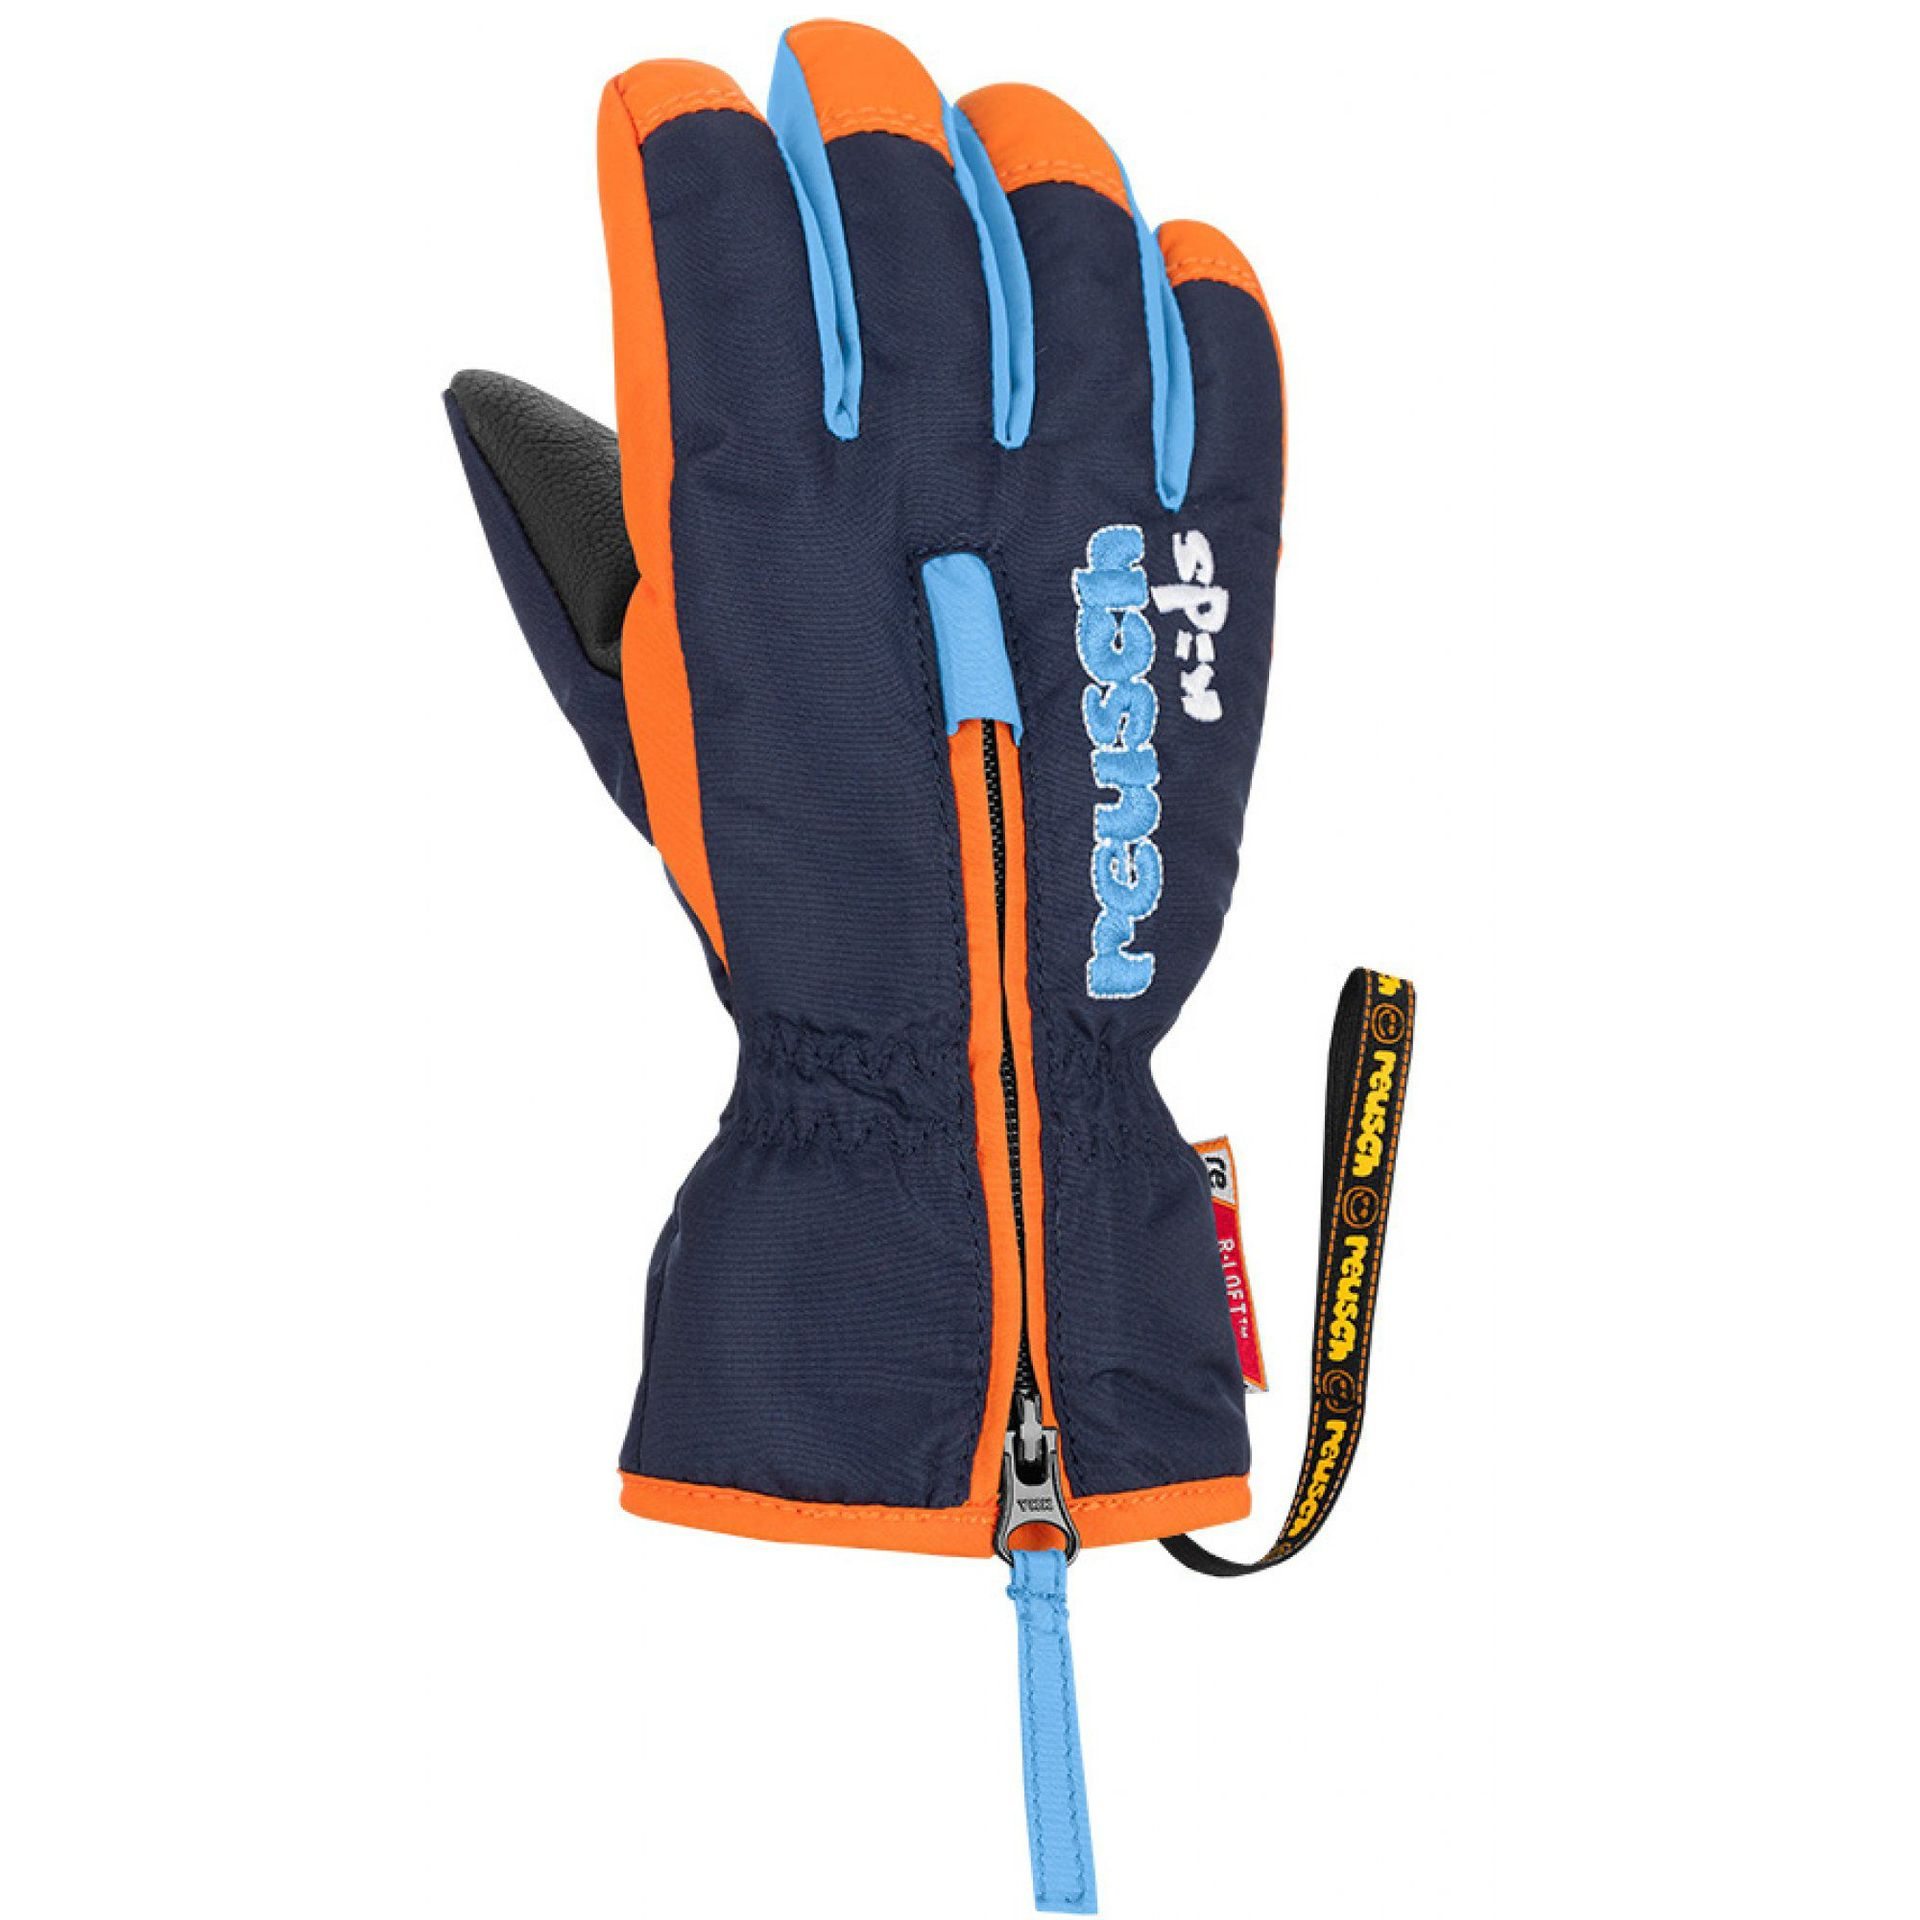 RĘKAWICE REUSCH BEN DRESS BLUE ORANGE POPSICLE 425